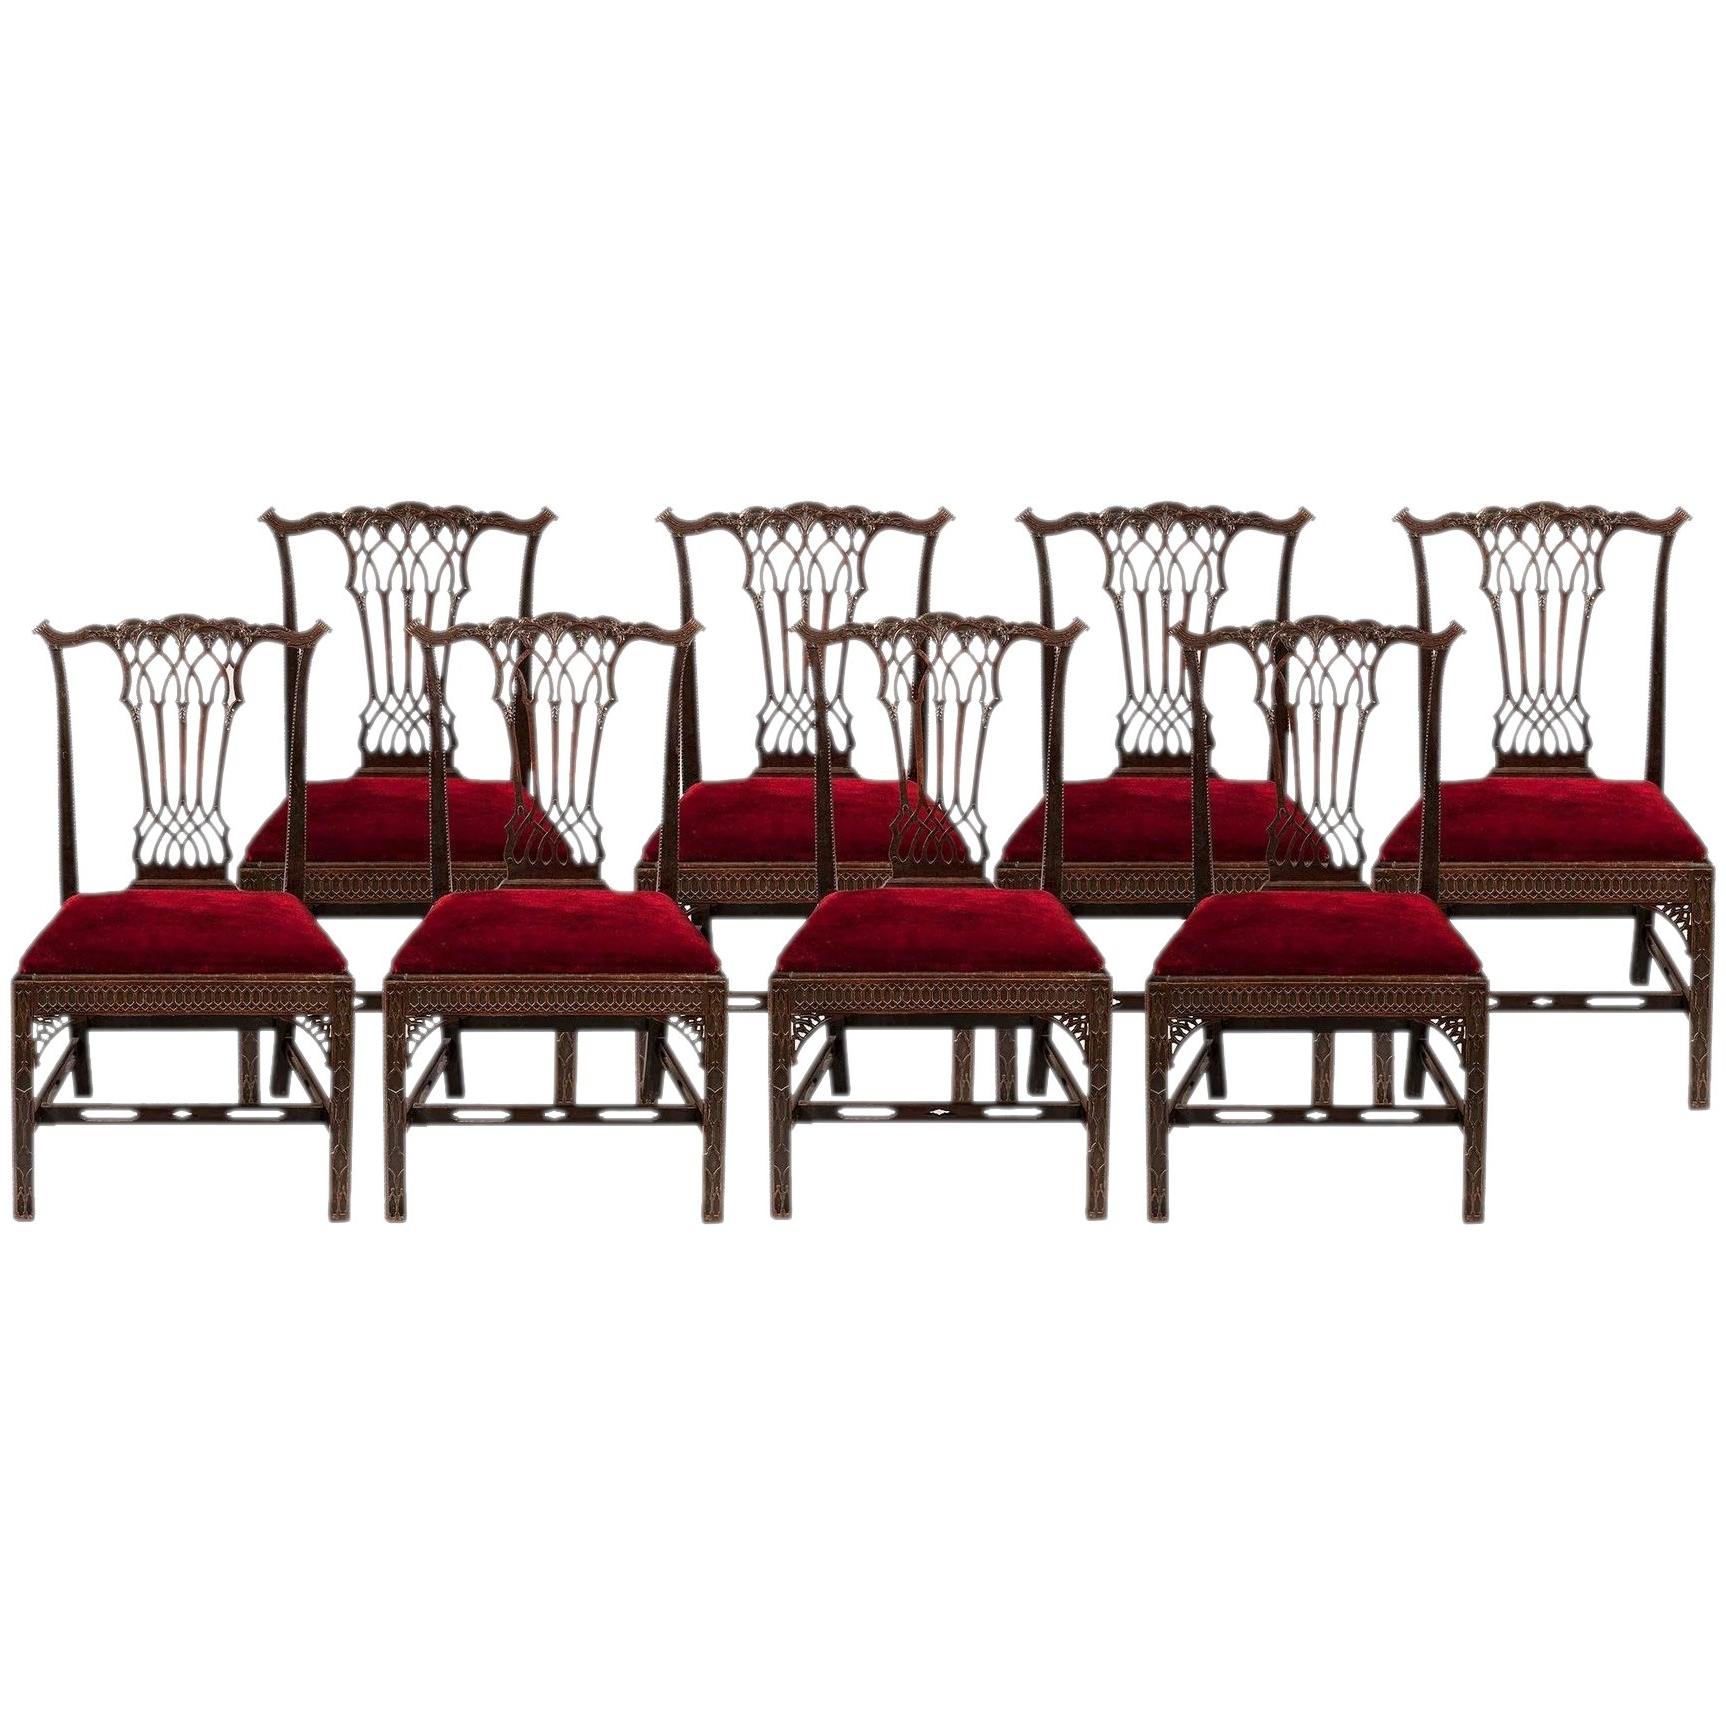 2018 Set Of Eight Side Chairs In The Georgian Gothick Manner : Butchoff Within Partridge Side Chairs (Gallery 20 of 20)